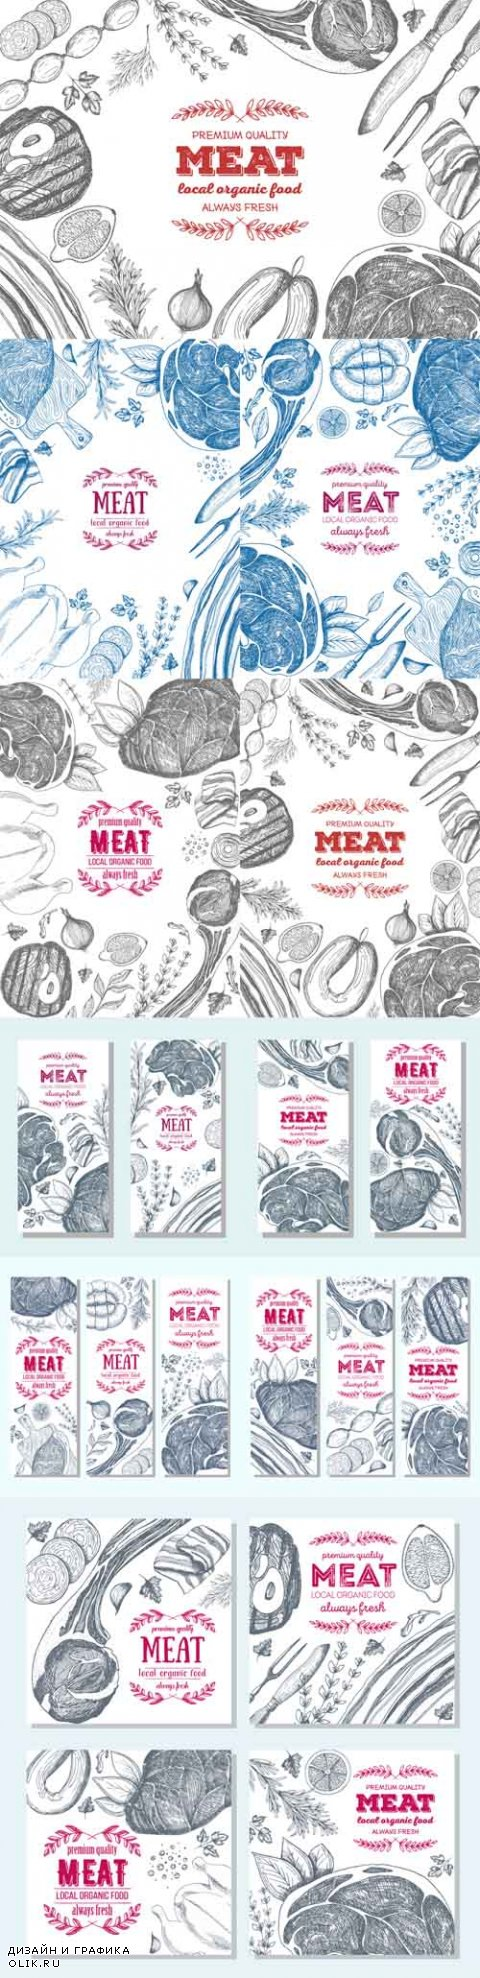 Vector Meat Banners and Frames. Linear Graphic. Vintage Illustrations